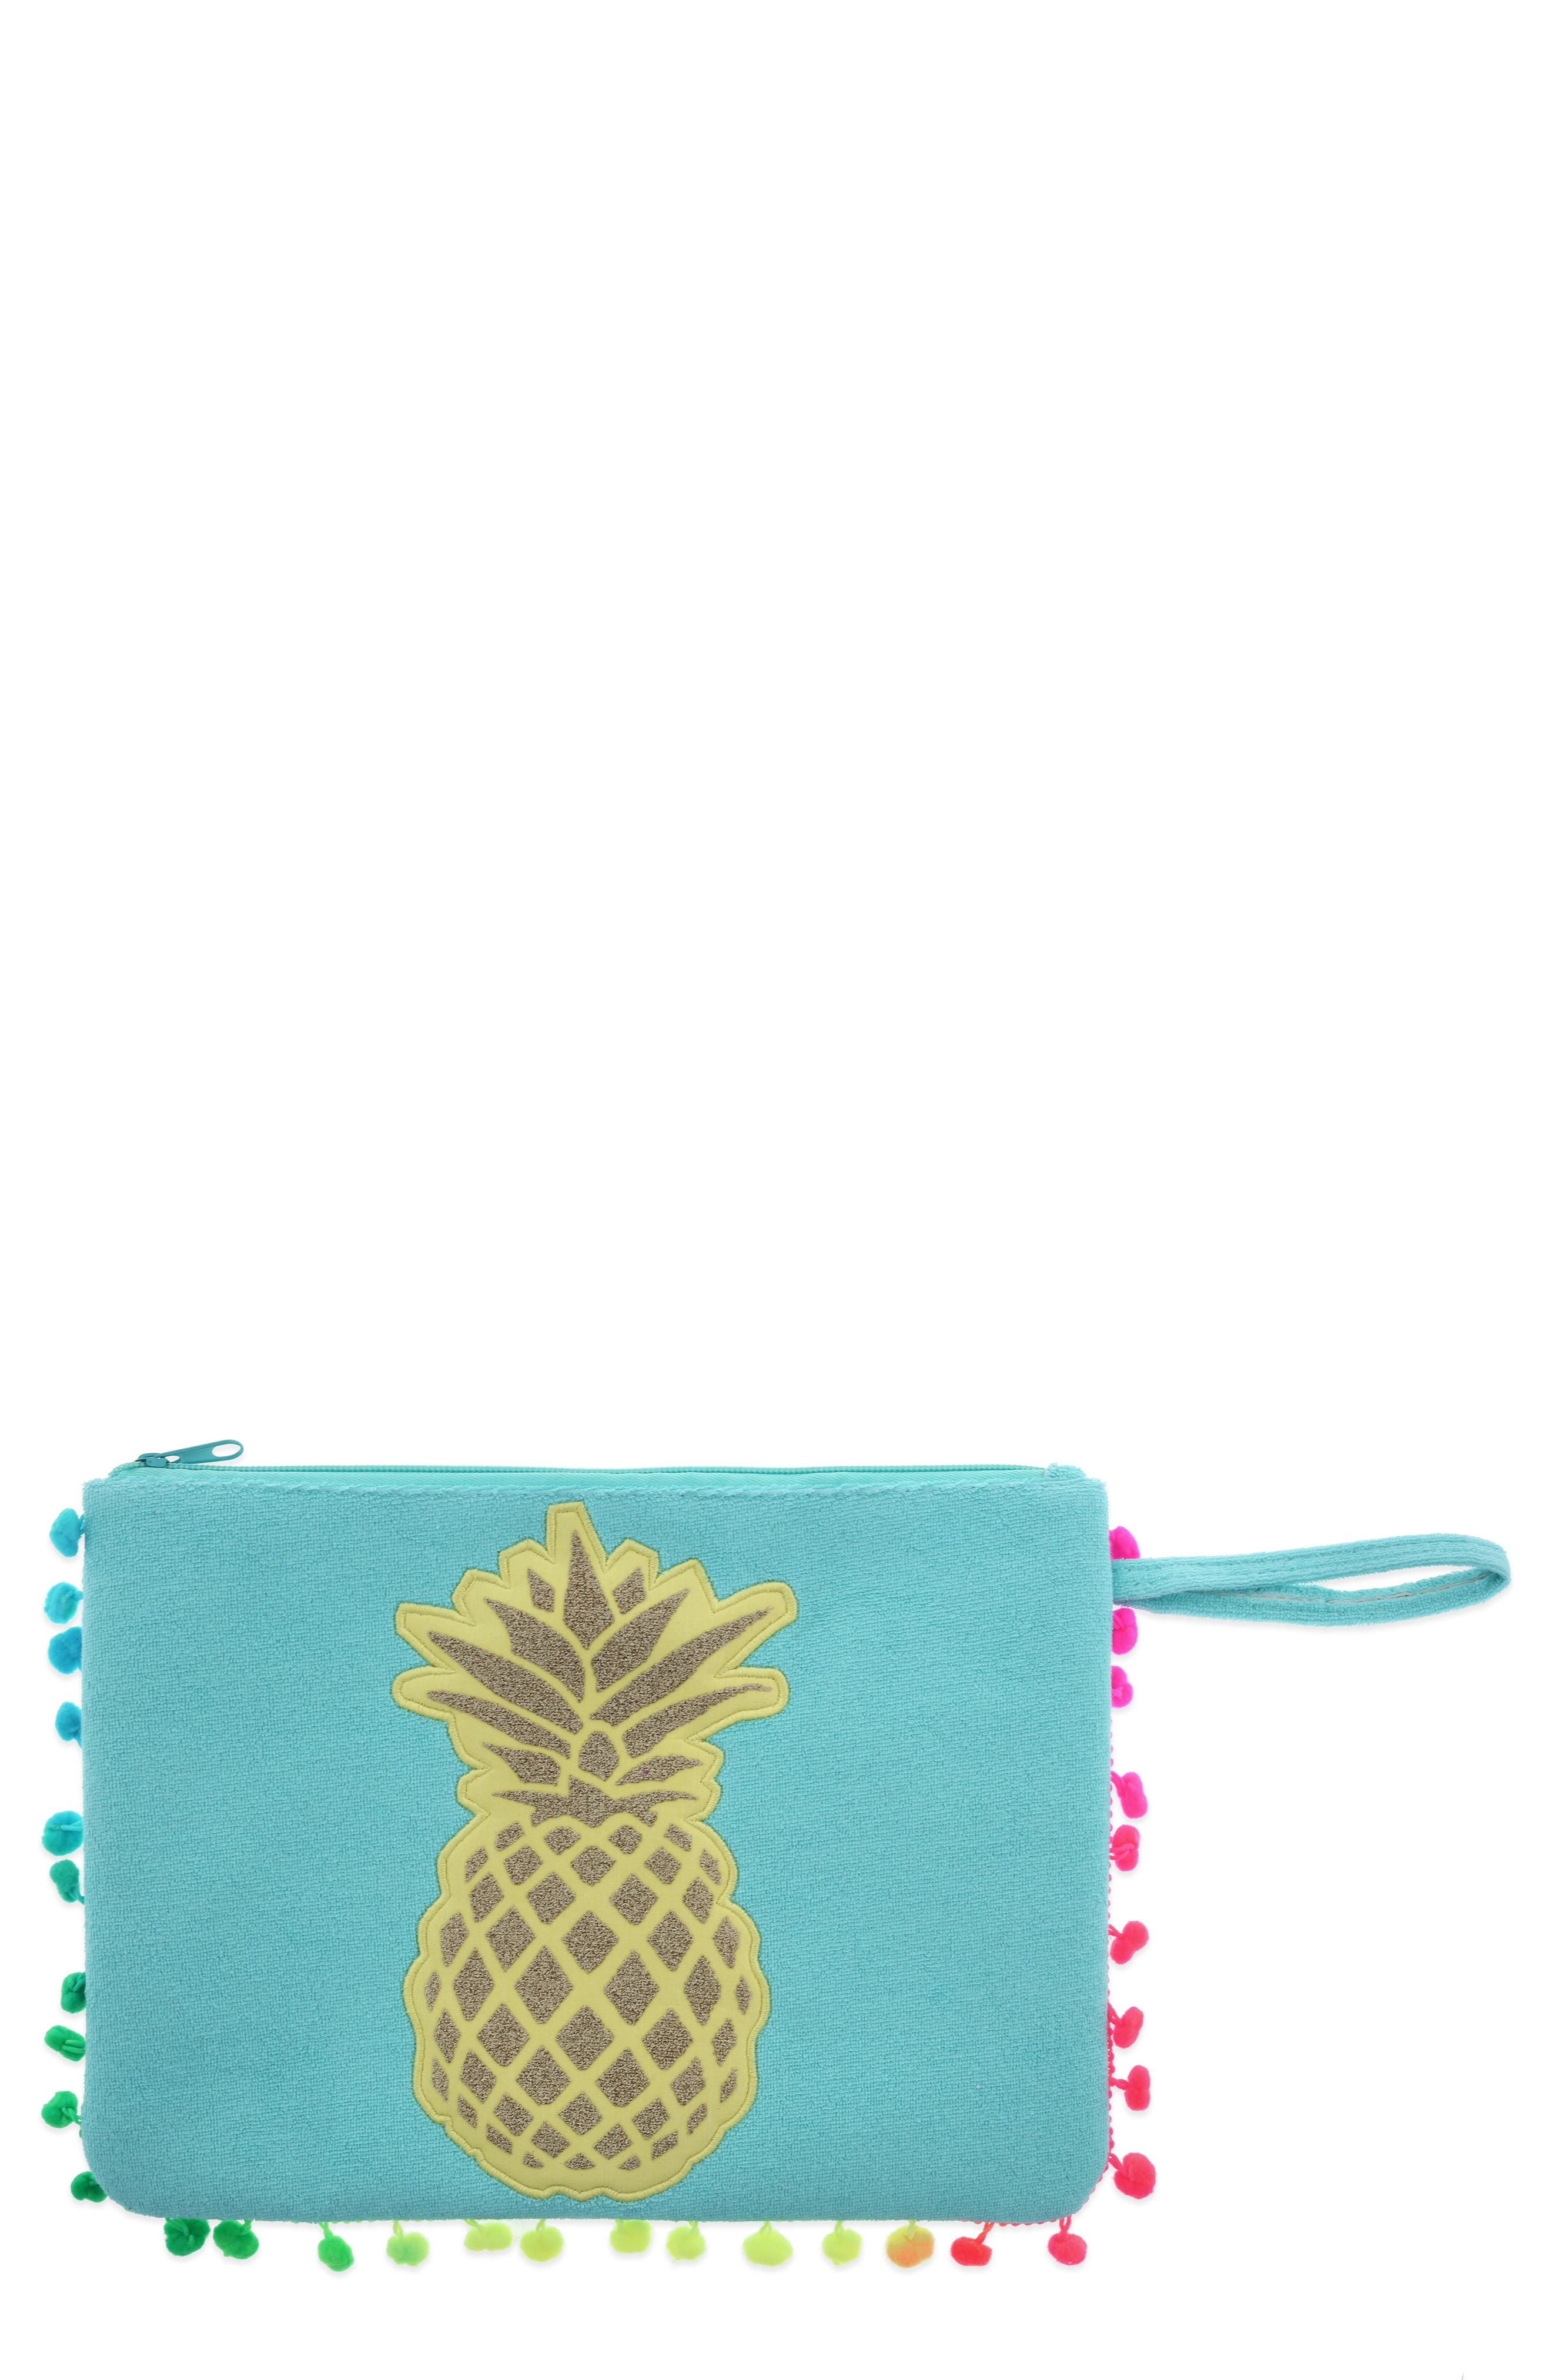 Pineapple Pompom Bikini Bag,                             Main thumbnail 1, color,                             400